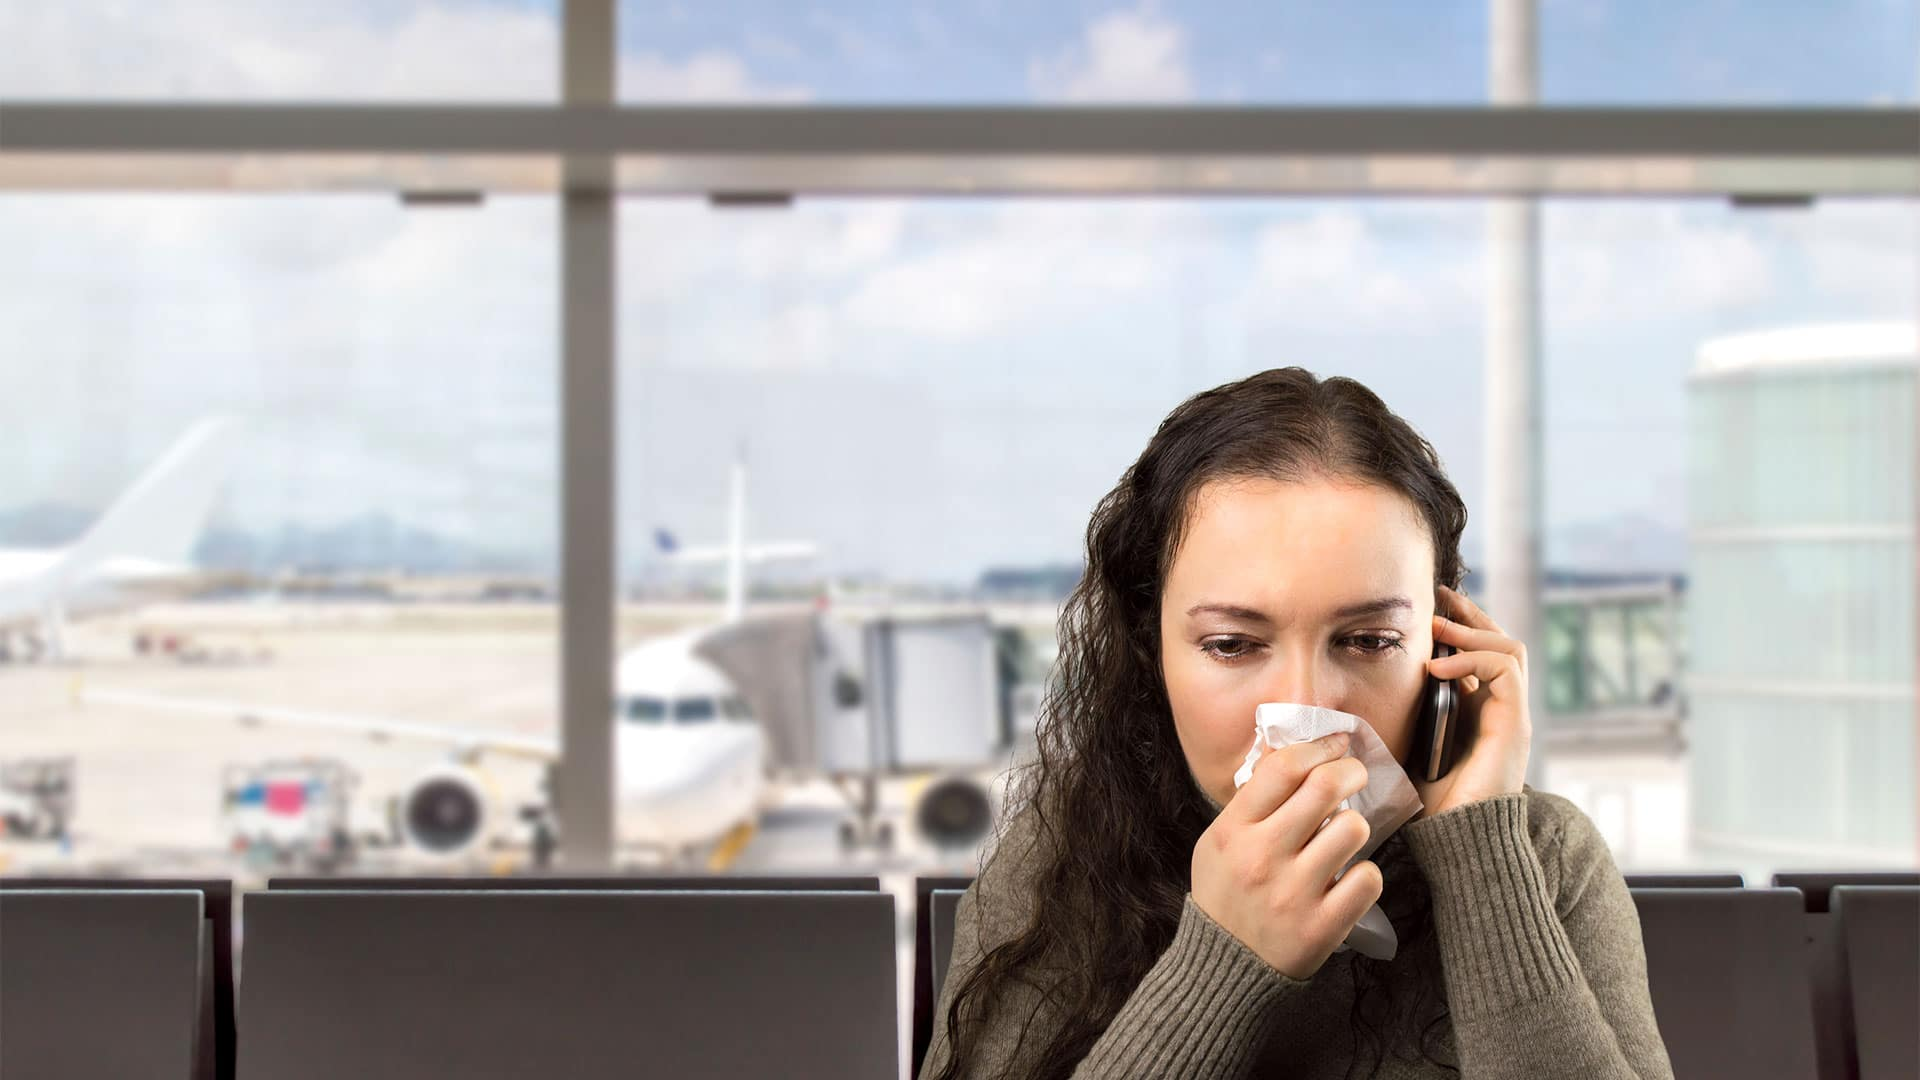 Don't catch that flu! 10 tips for staying healthy on a plane